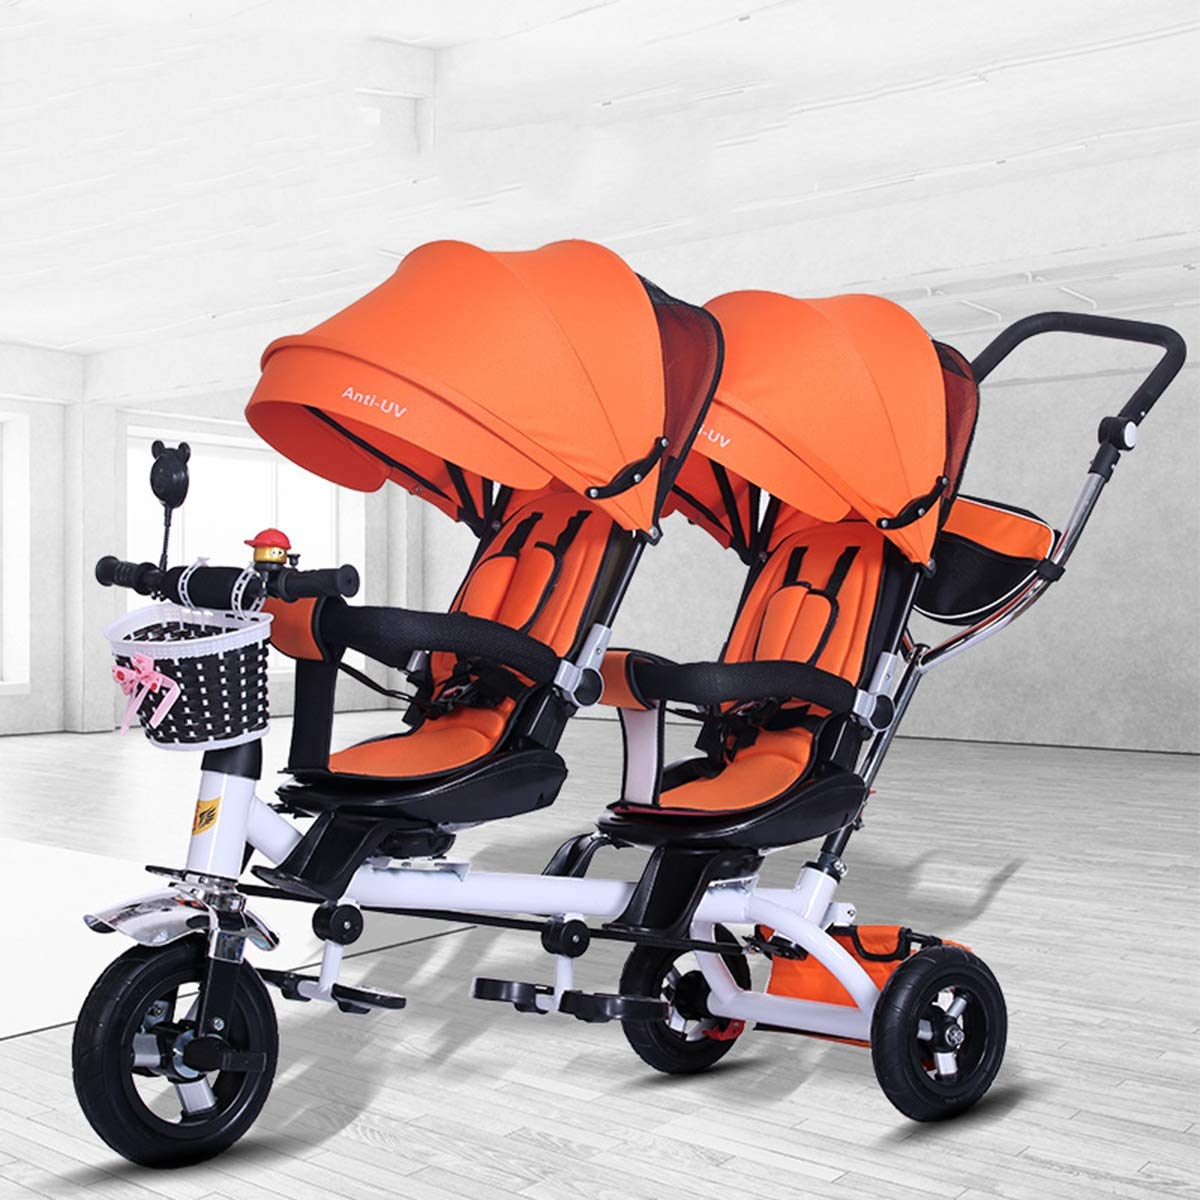 Eustoma Lightweight Twin Baby Stroller, Double Baby Bicycle Tricycle with Storage Basket and UV Protection Awning,Orange